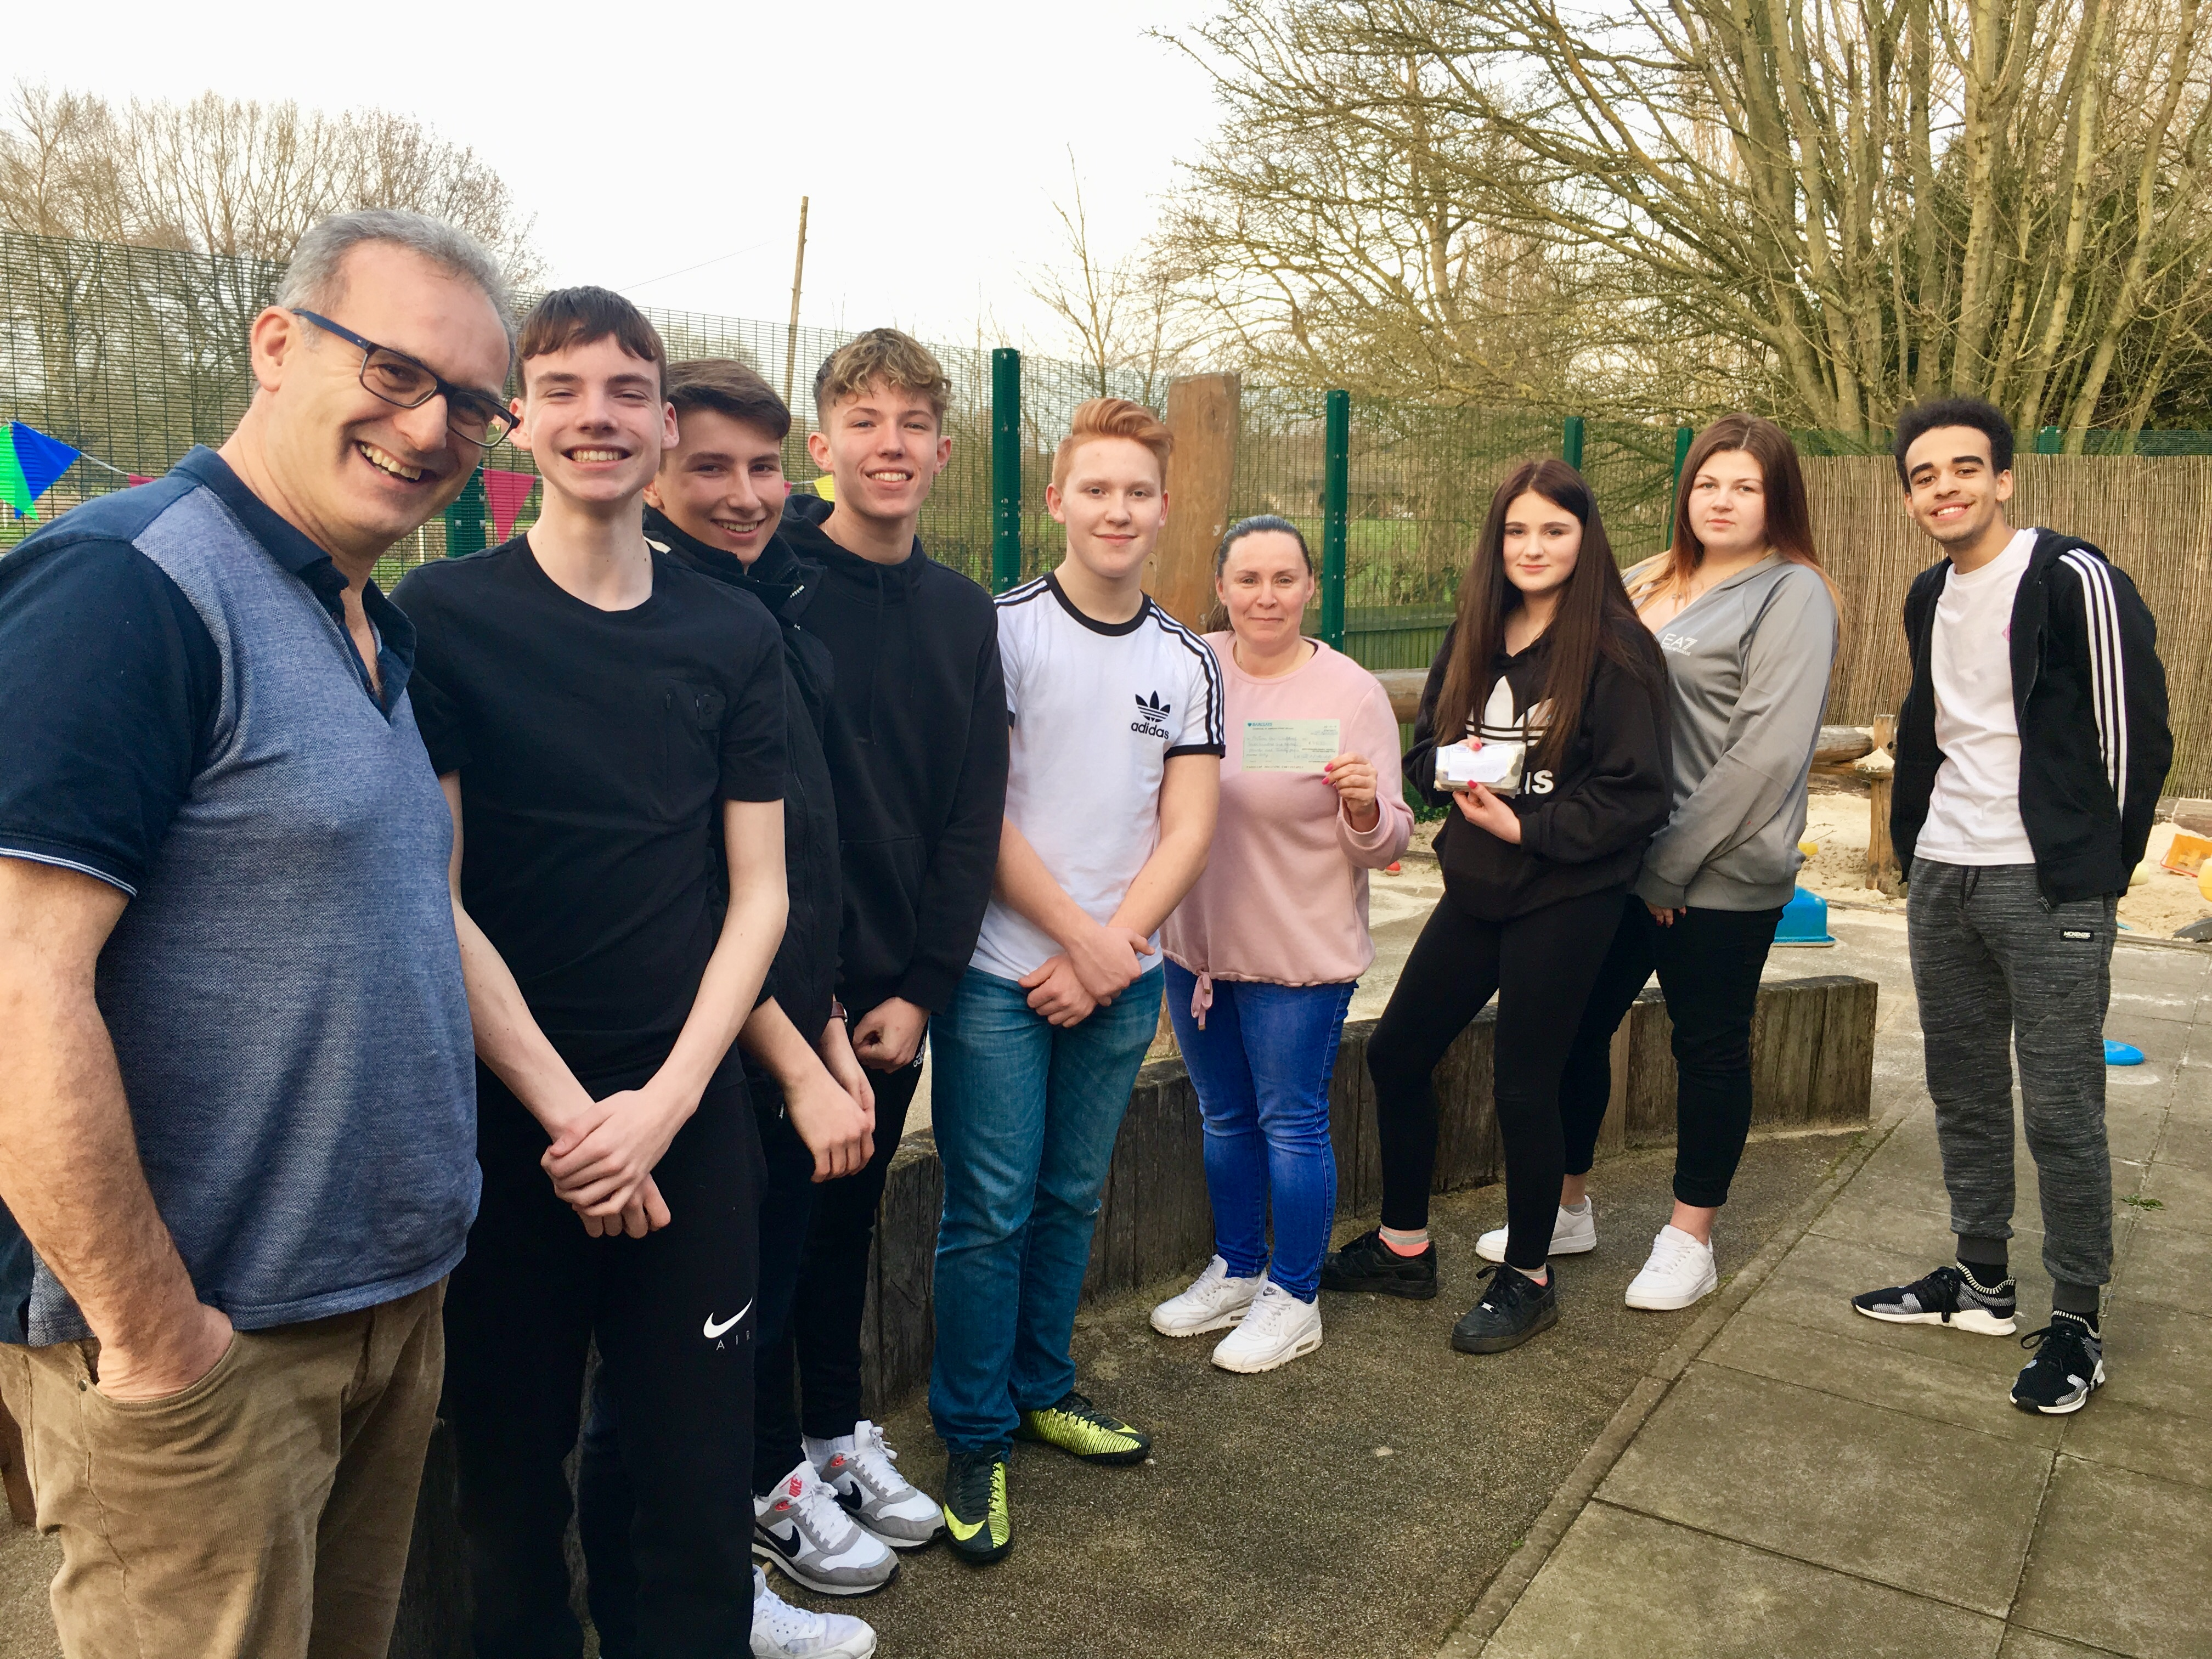 West Hyde Youth Council raises nearly £1,000 for charity